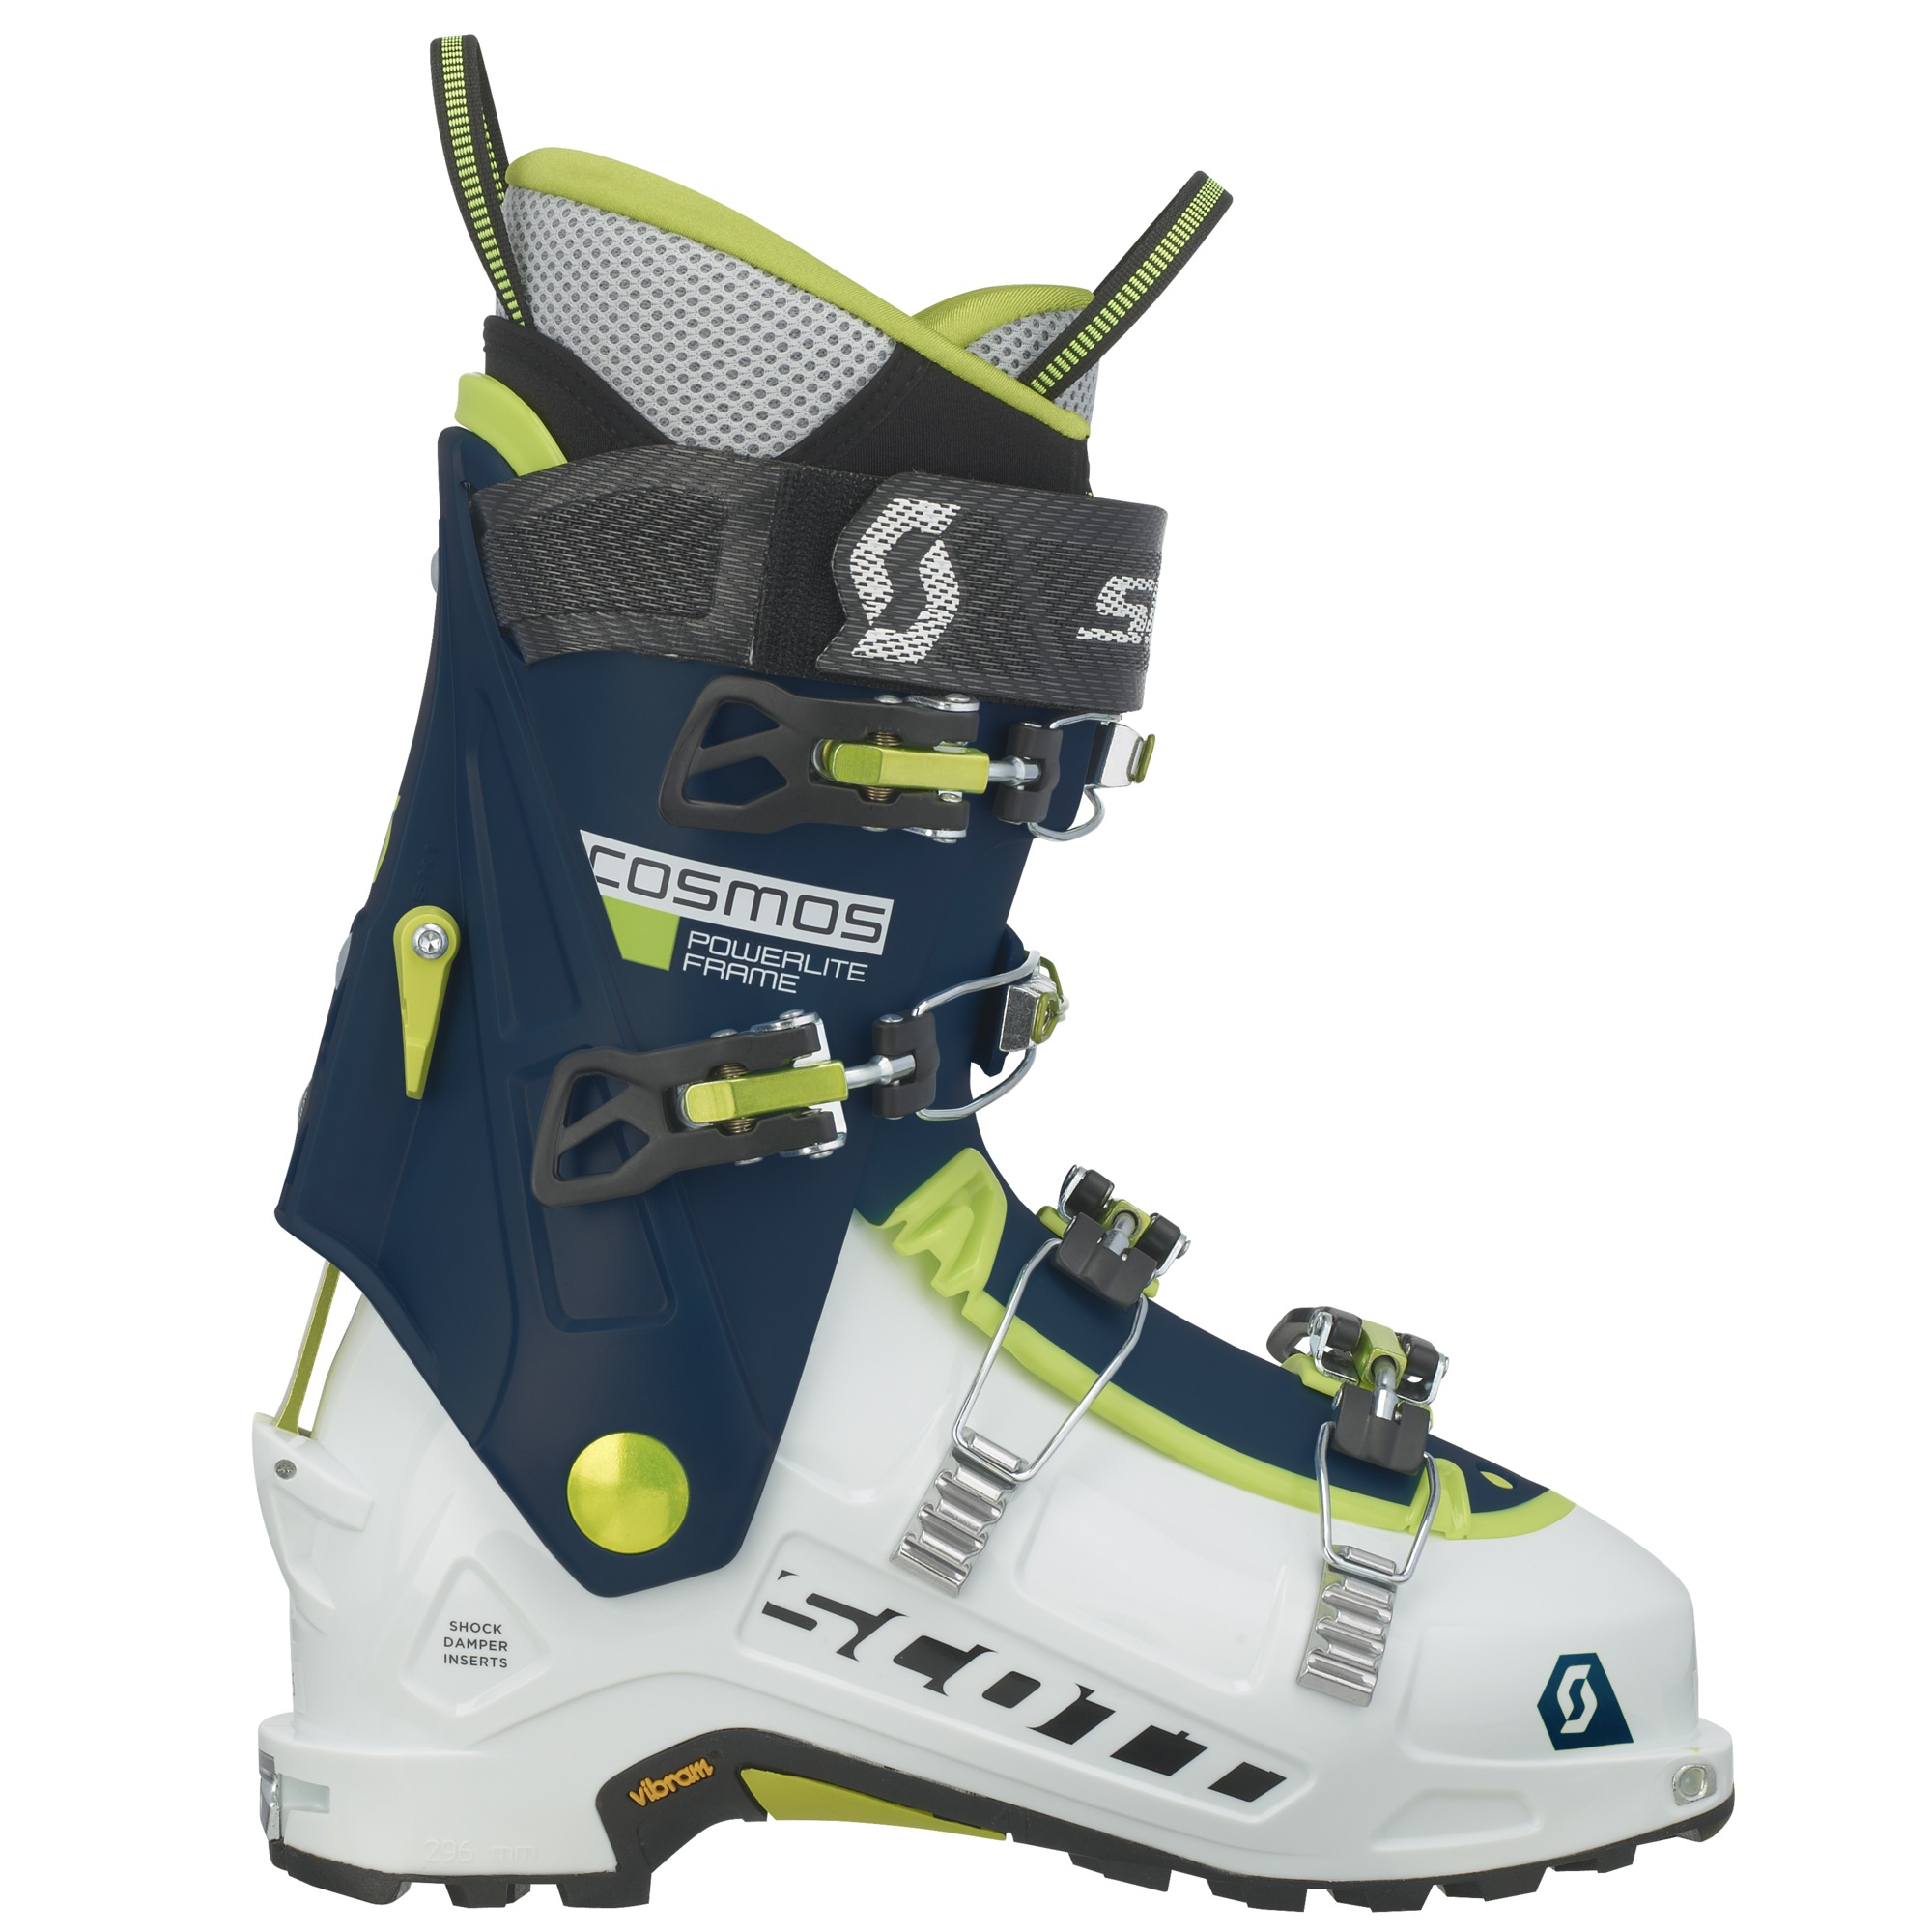 SCOTT Cosmos Ski Boot